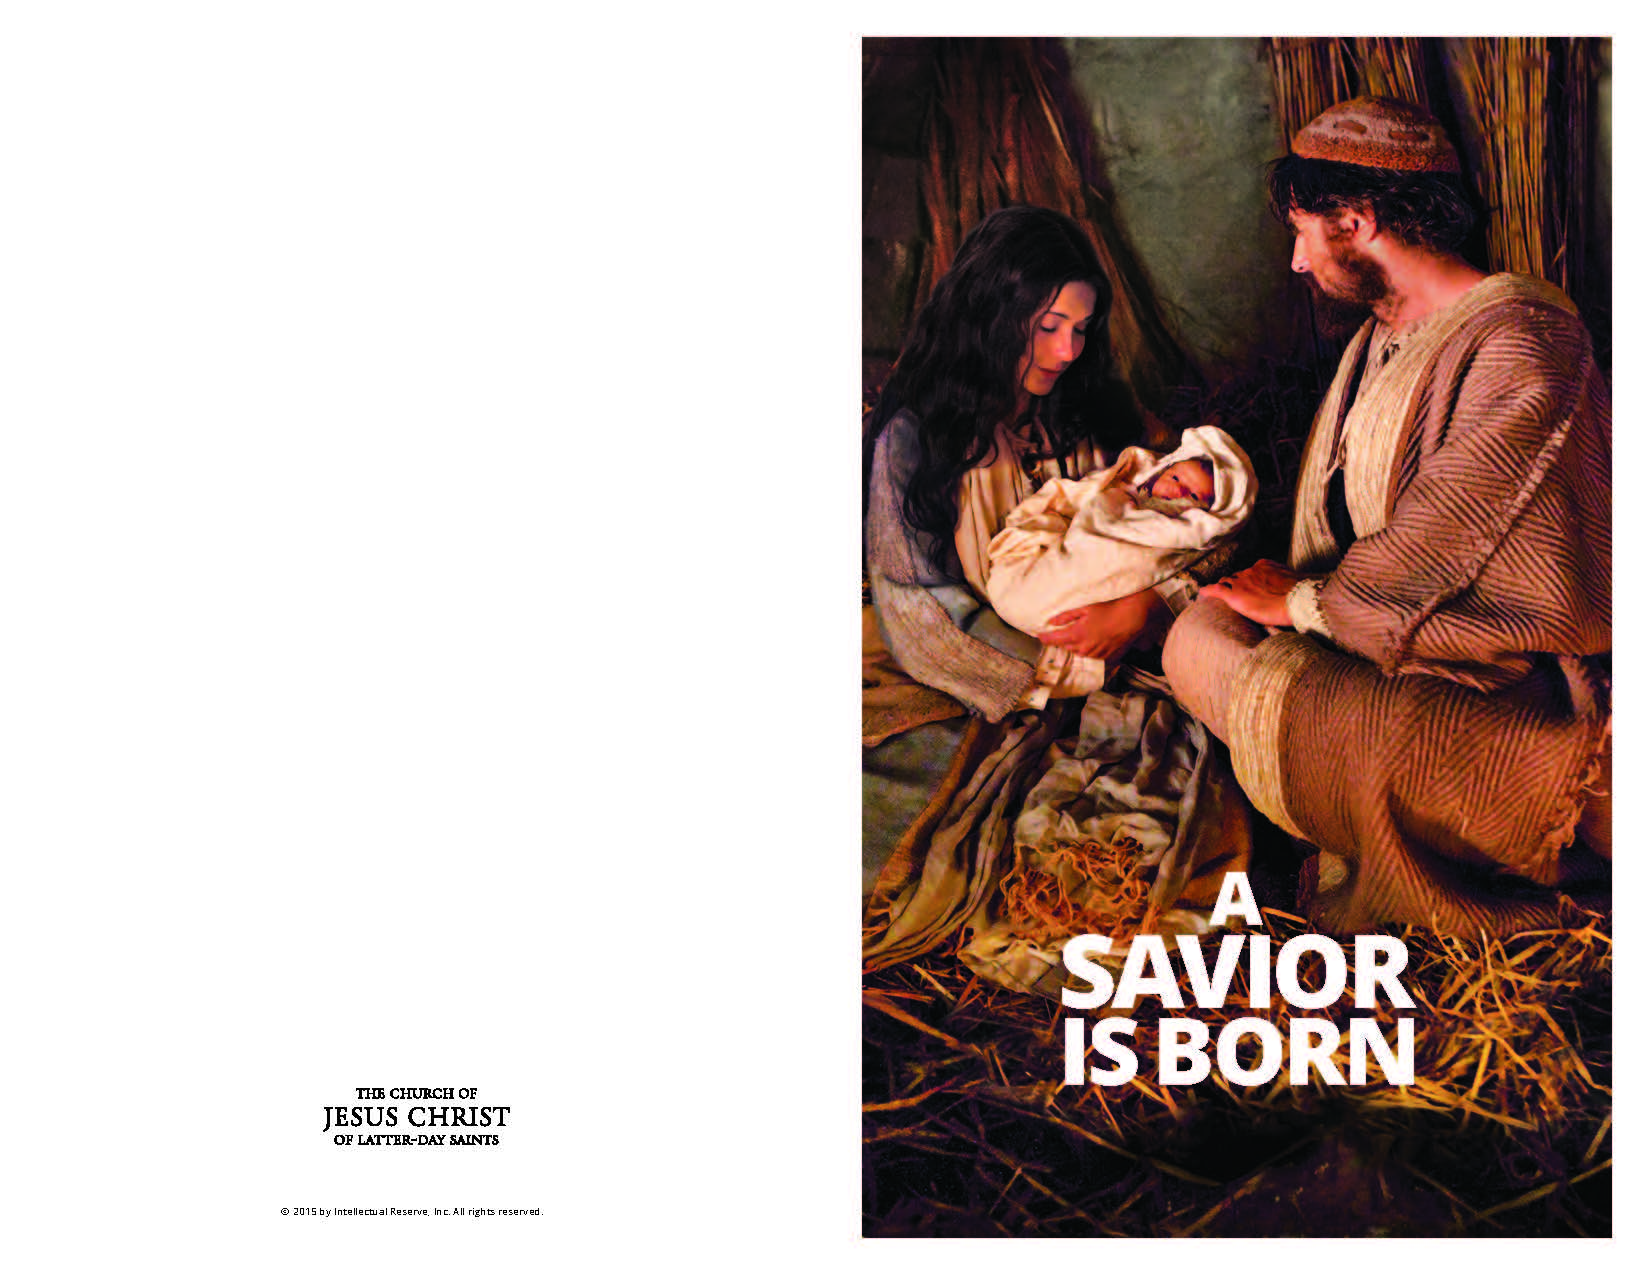 ASaviorIsBorn-LDS-Christmas-program-color